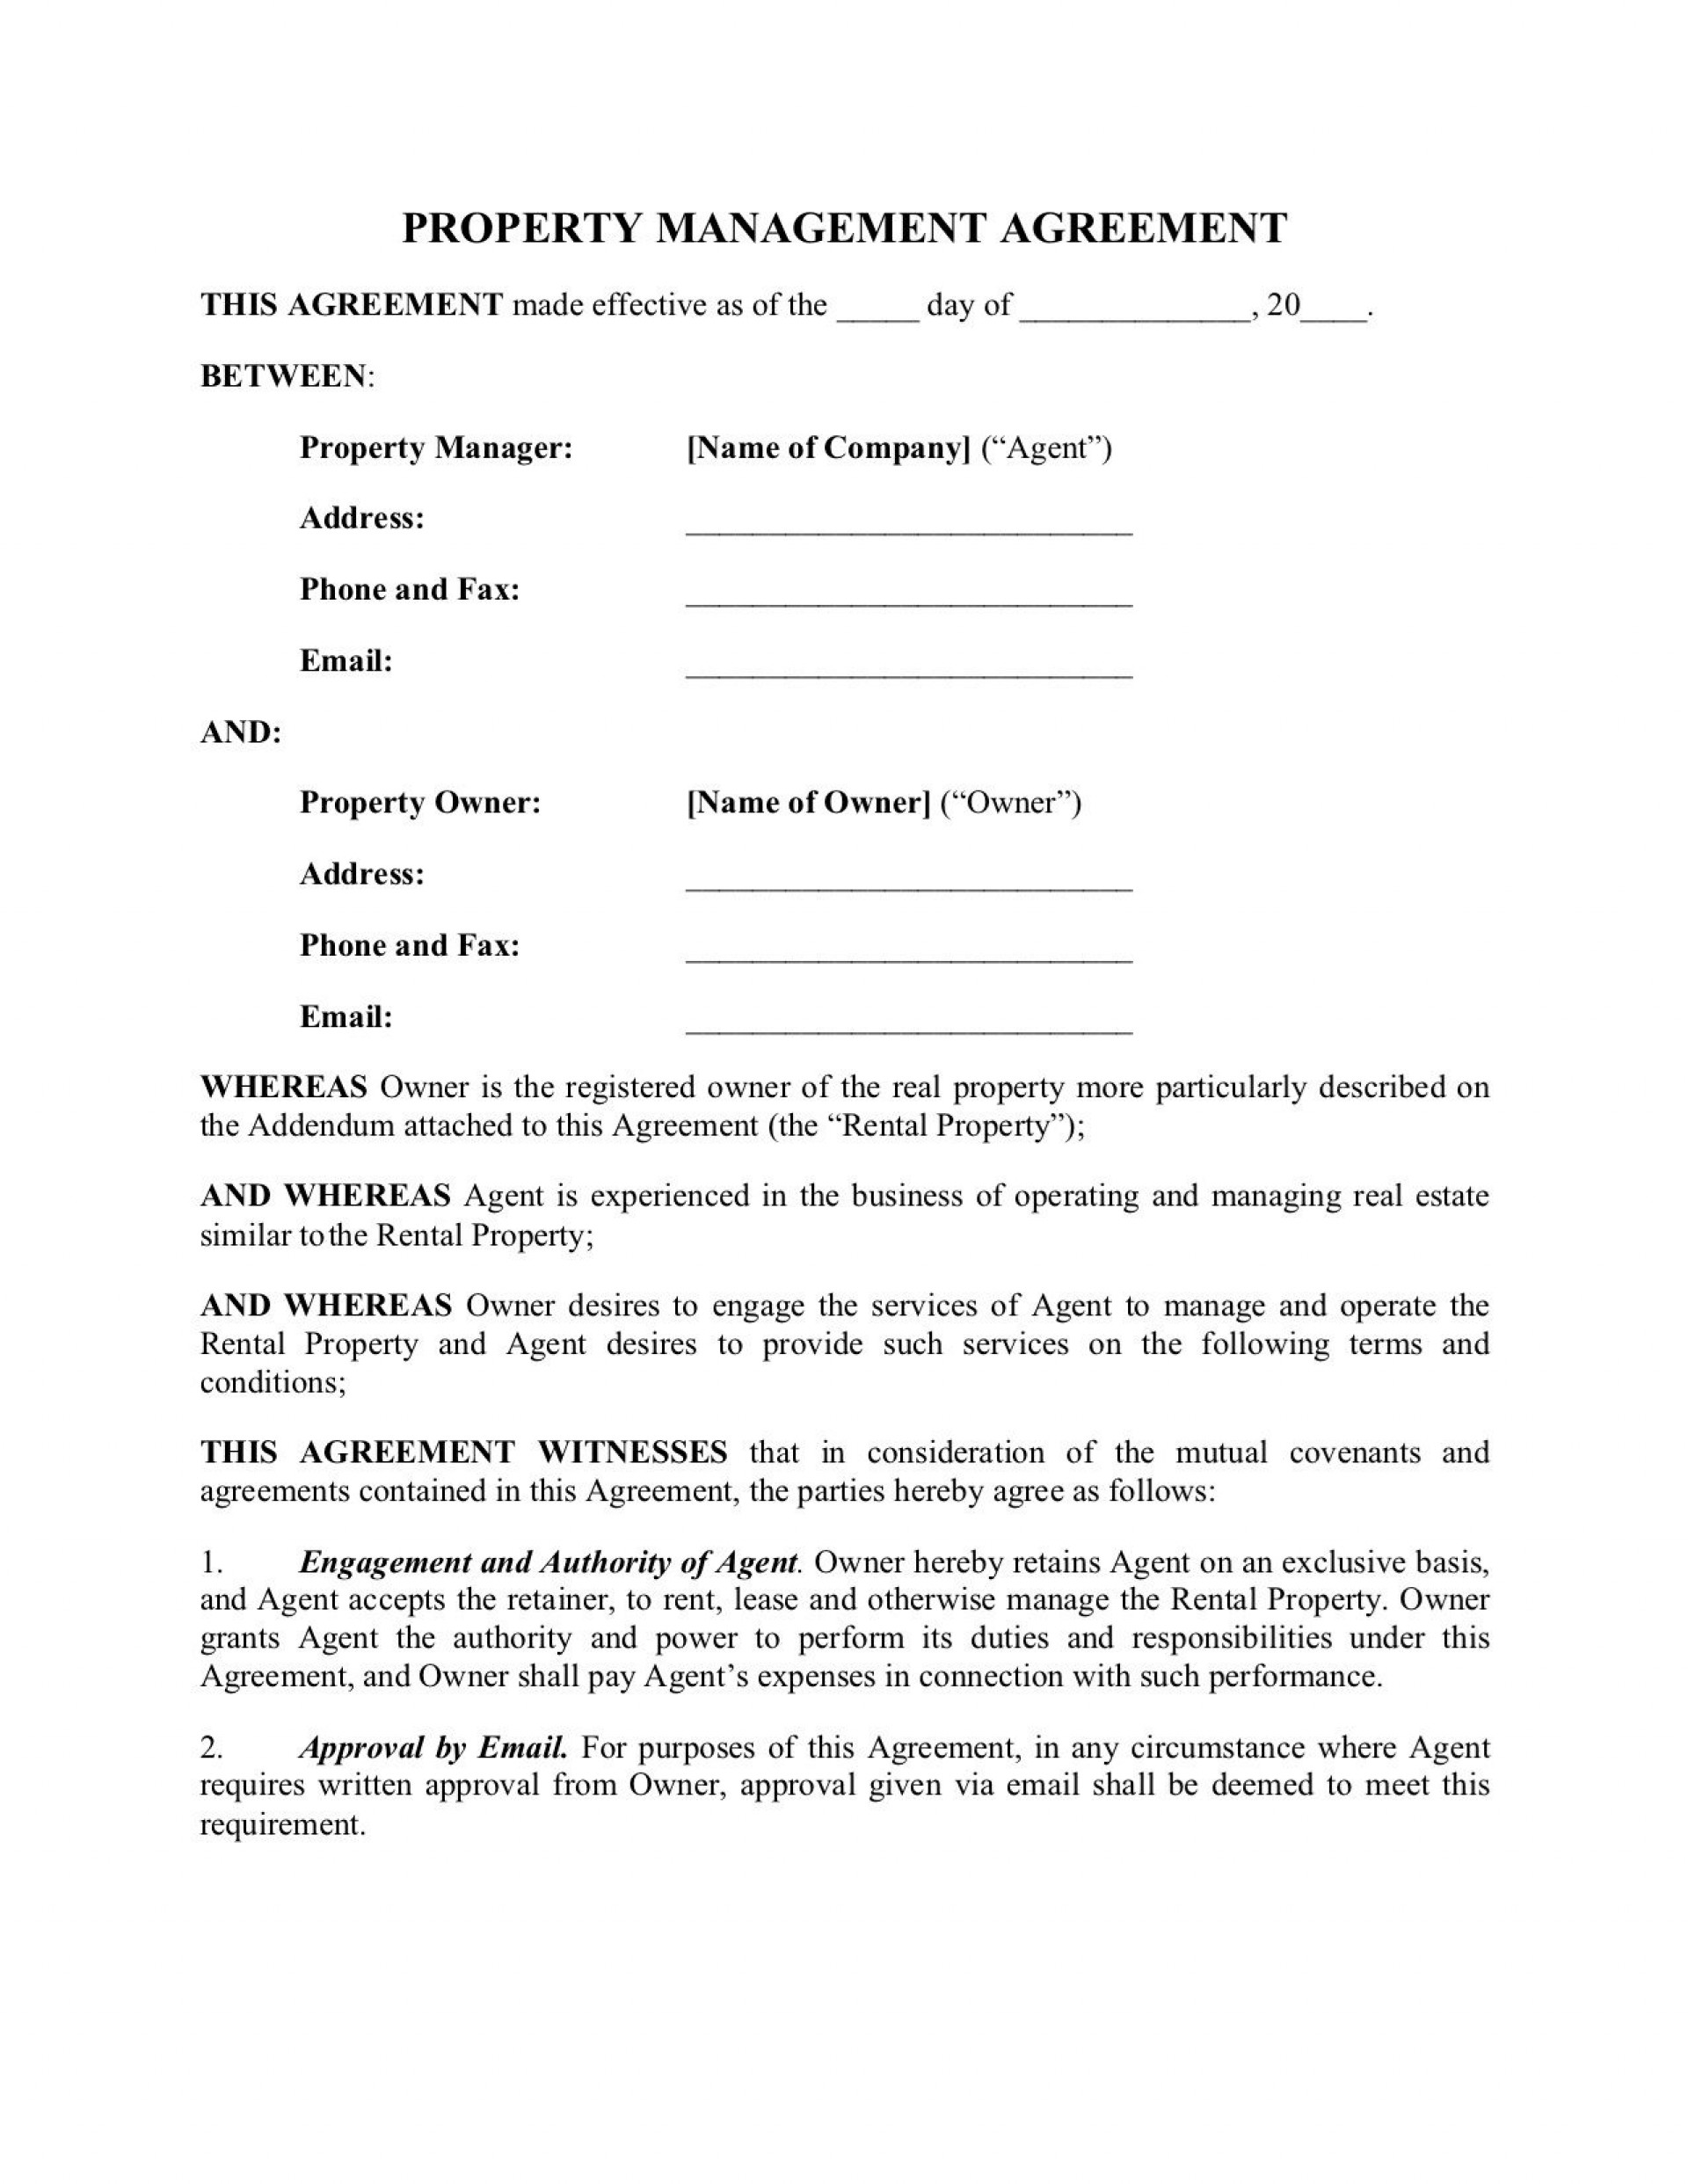 003 Marvelou Property Management Agreement Template Ontario Highest Quality  Contract1920